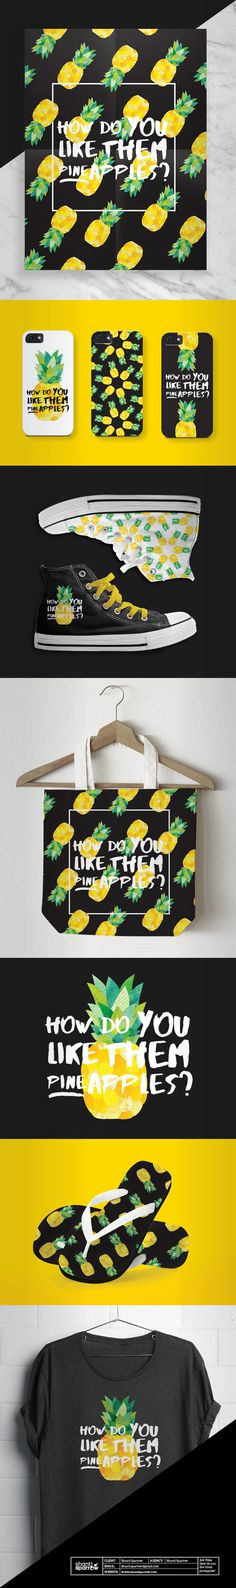 Design by Shanti Sparrow Project Name: How do you like them pineapples? #Design #graphicdesign #illustration #layout #merchandise #tshirt #